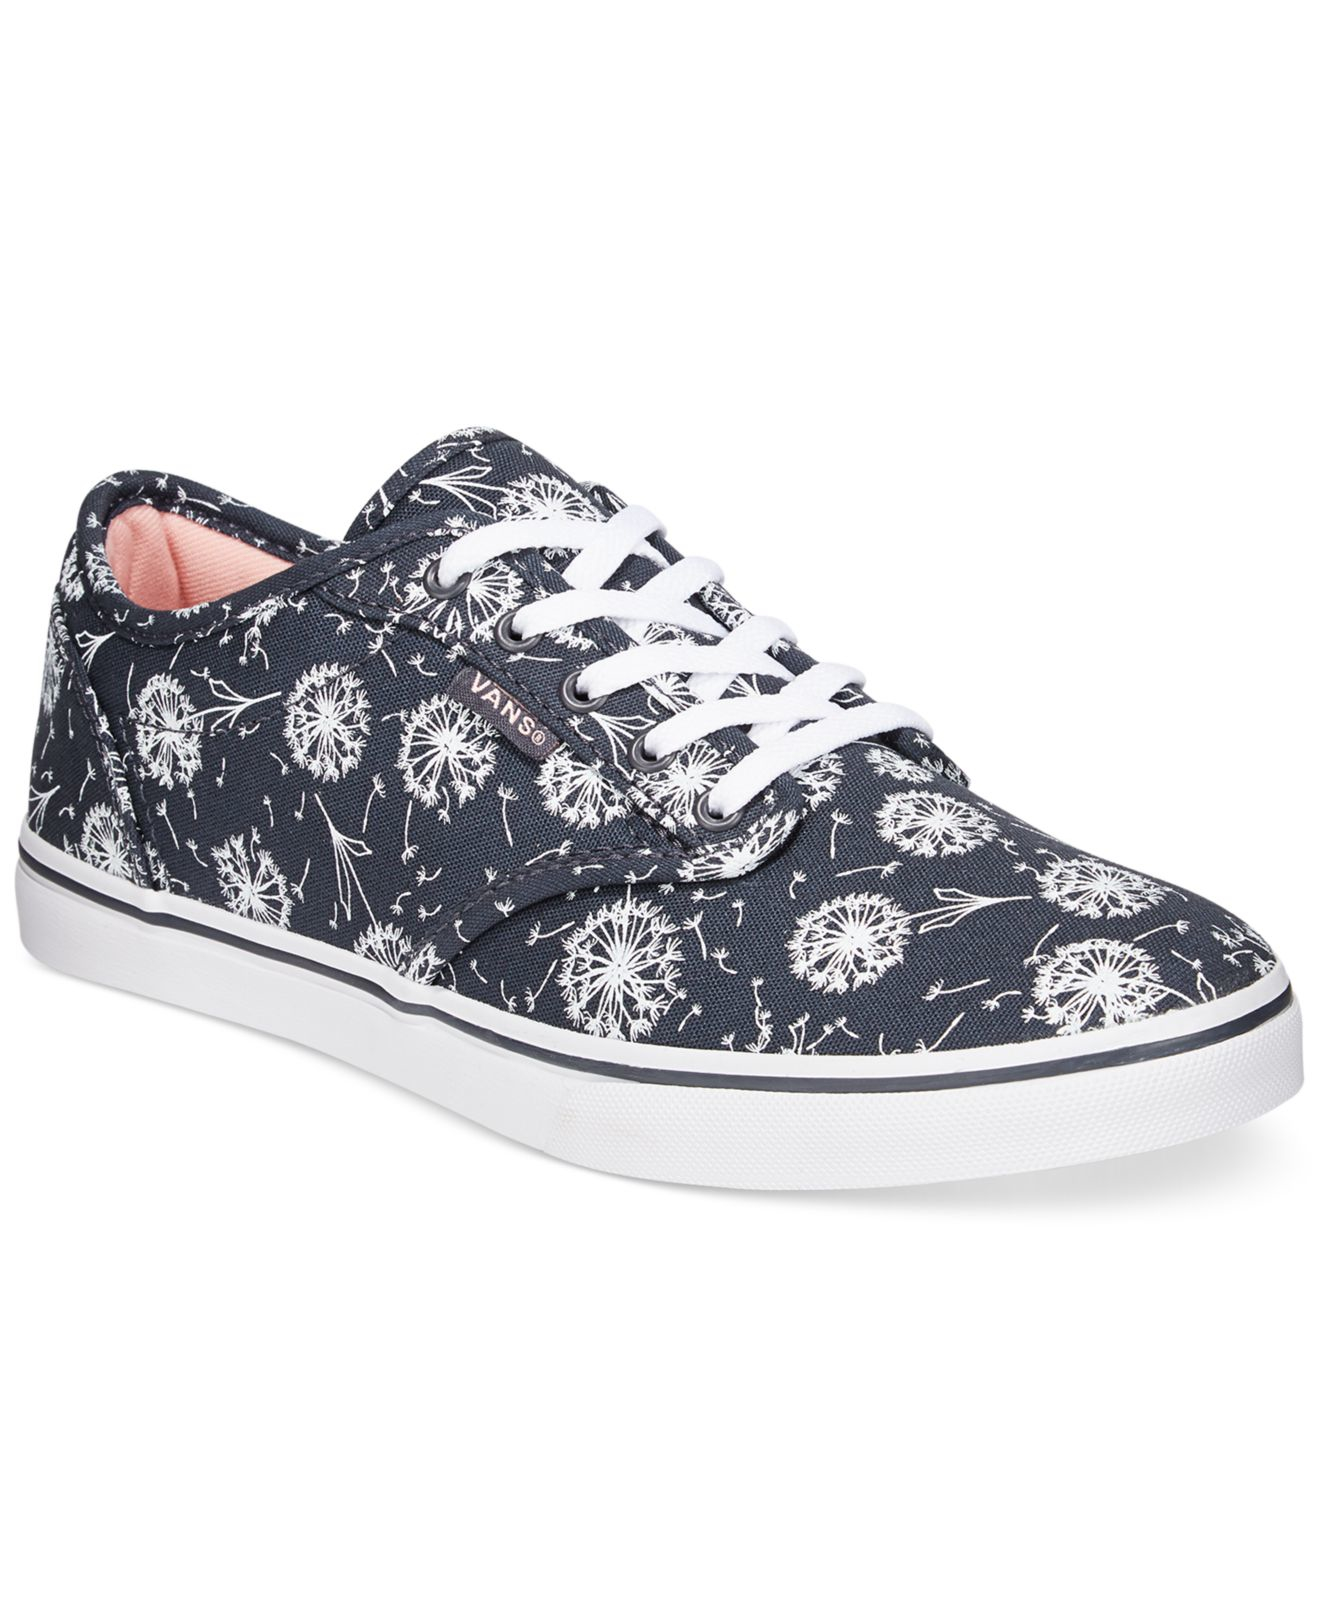 7e9c44687eb8 Lyst - Vans Women s Atwood Low Dandelion Lace-up Sneakers in Blue